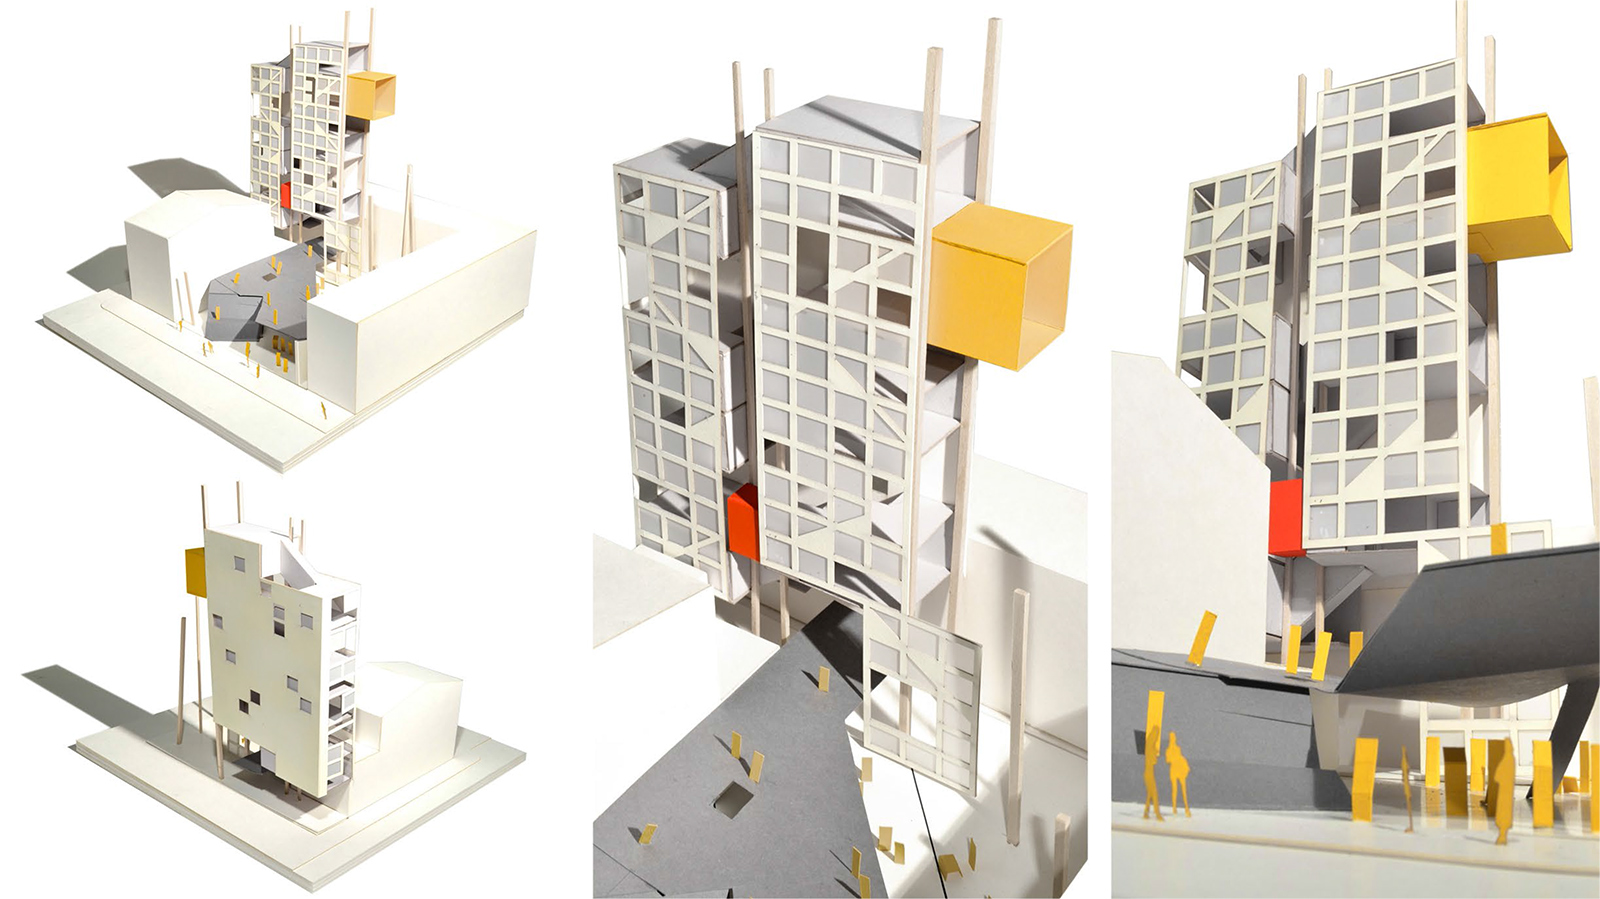 Study model of the CART tower with two scales of elevators for moving food carts and people to the communal spaces